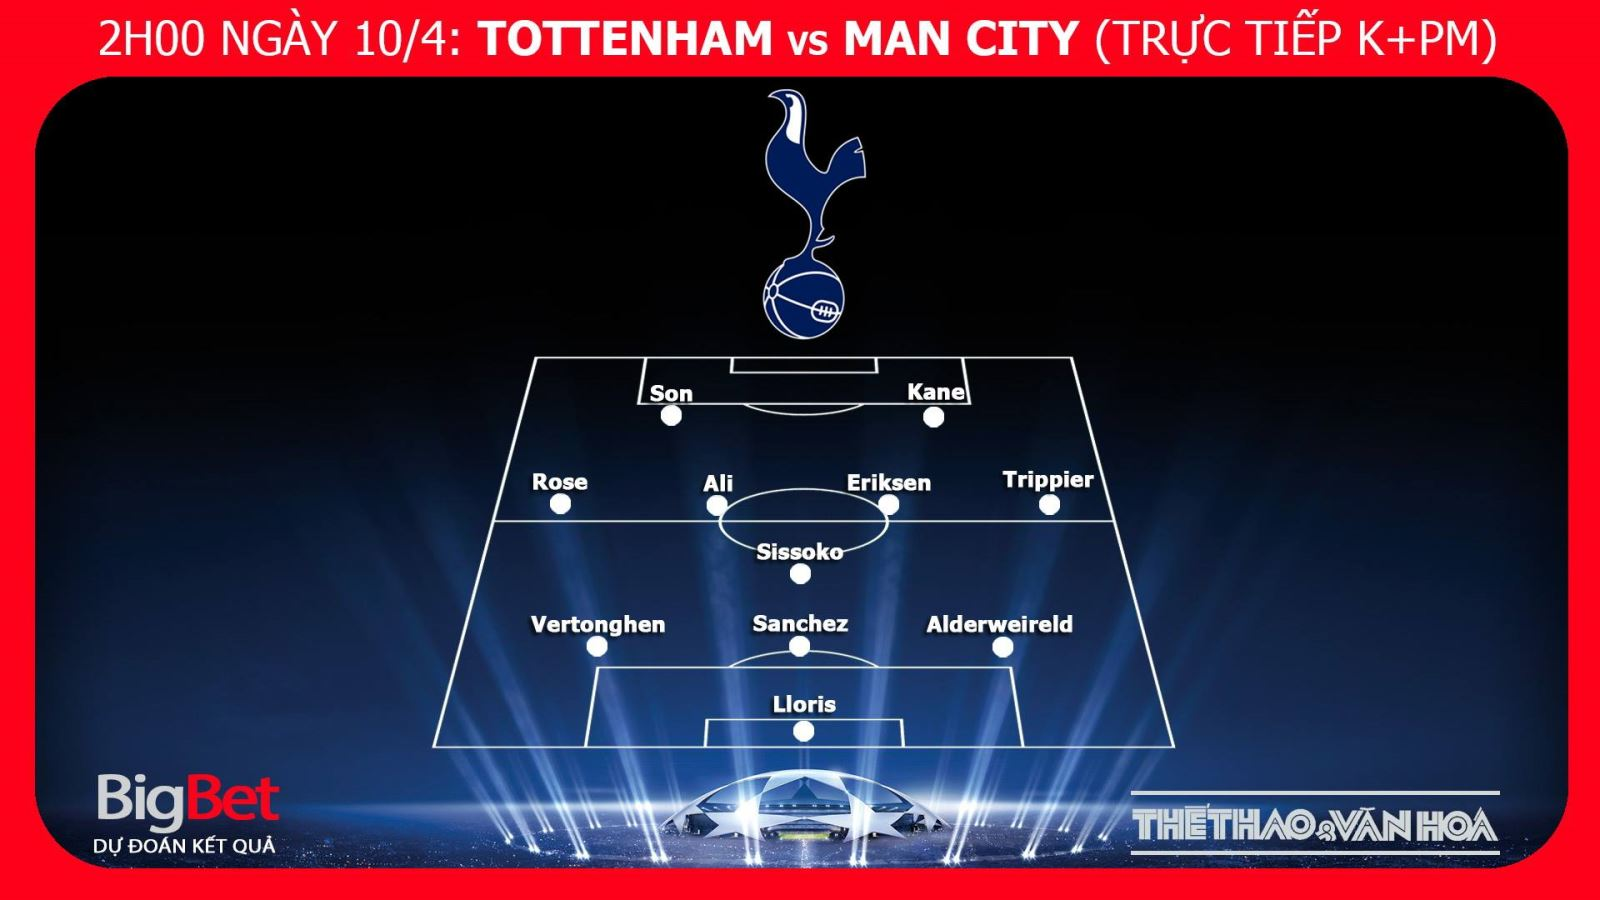 Tottenham vs Man City, Tottenham, Man City, Spurs, Manchester City, MC, Man City vs Tottenham, Tottenham đối đầu Man City, Tottenham gặp Man City.